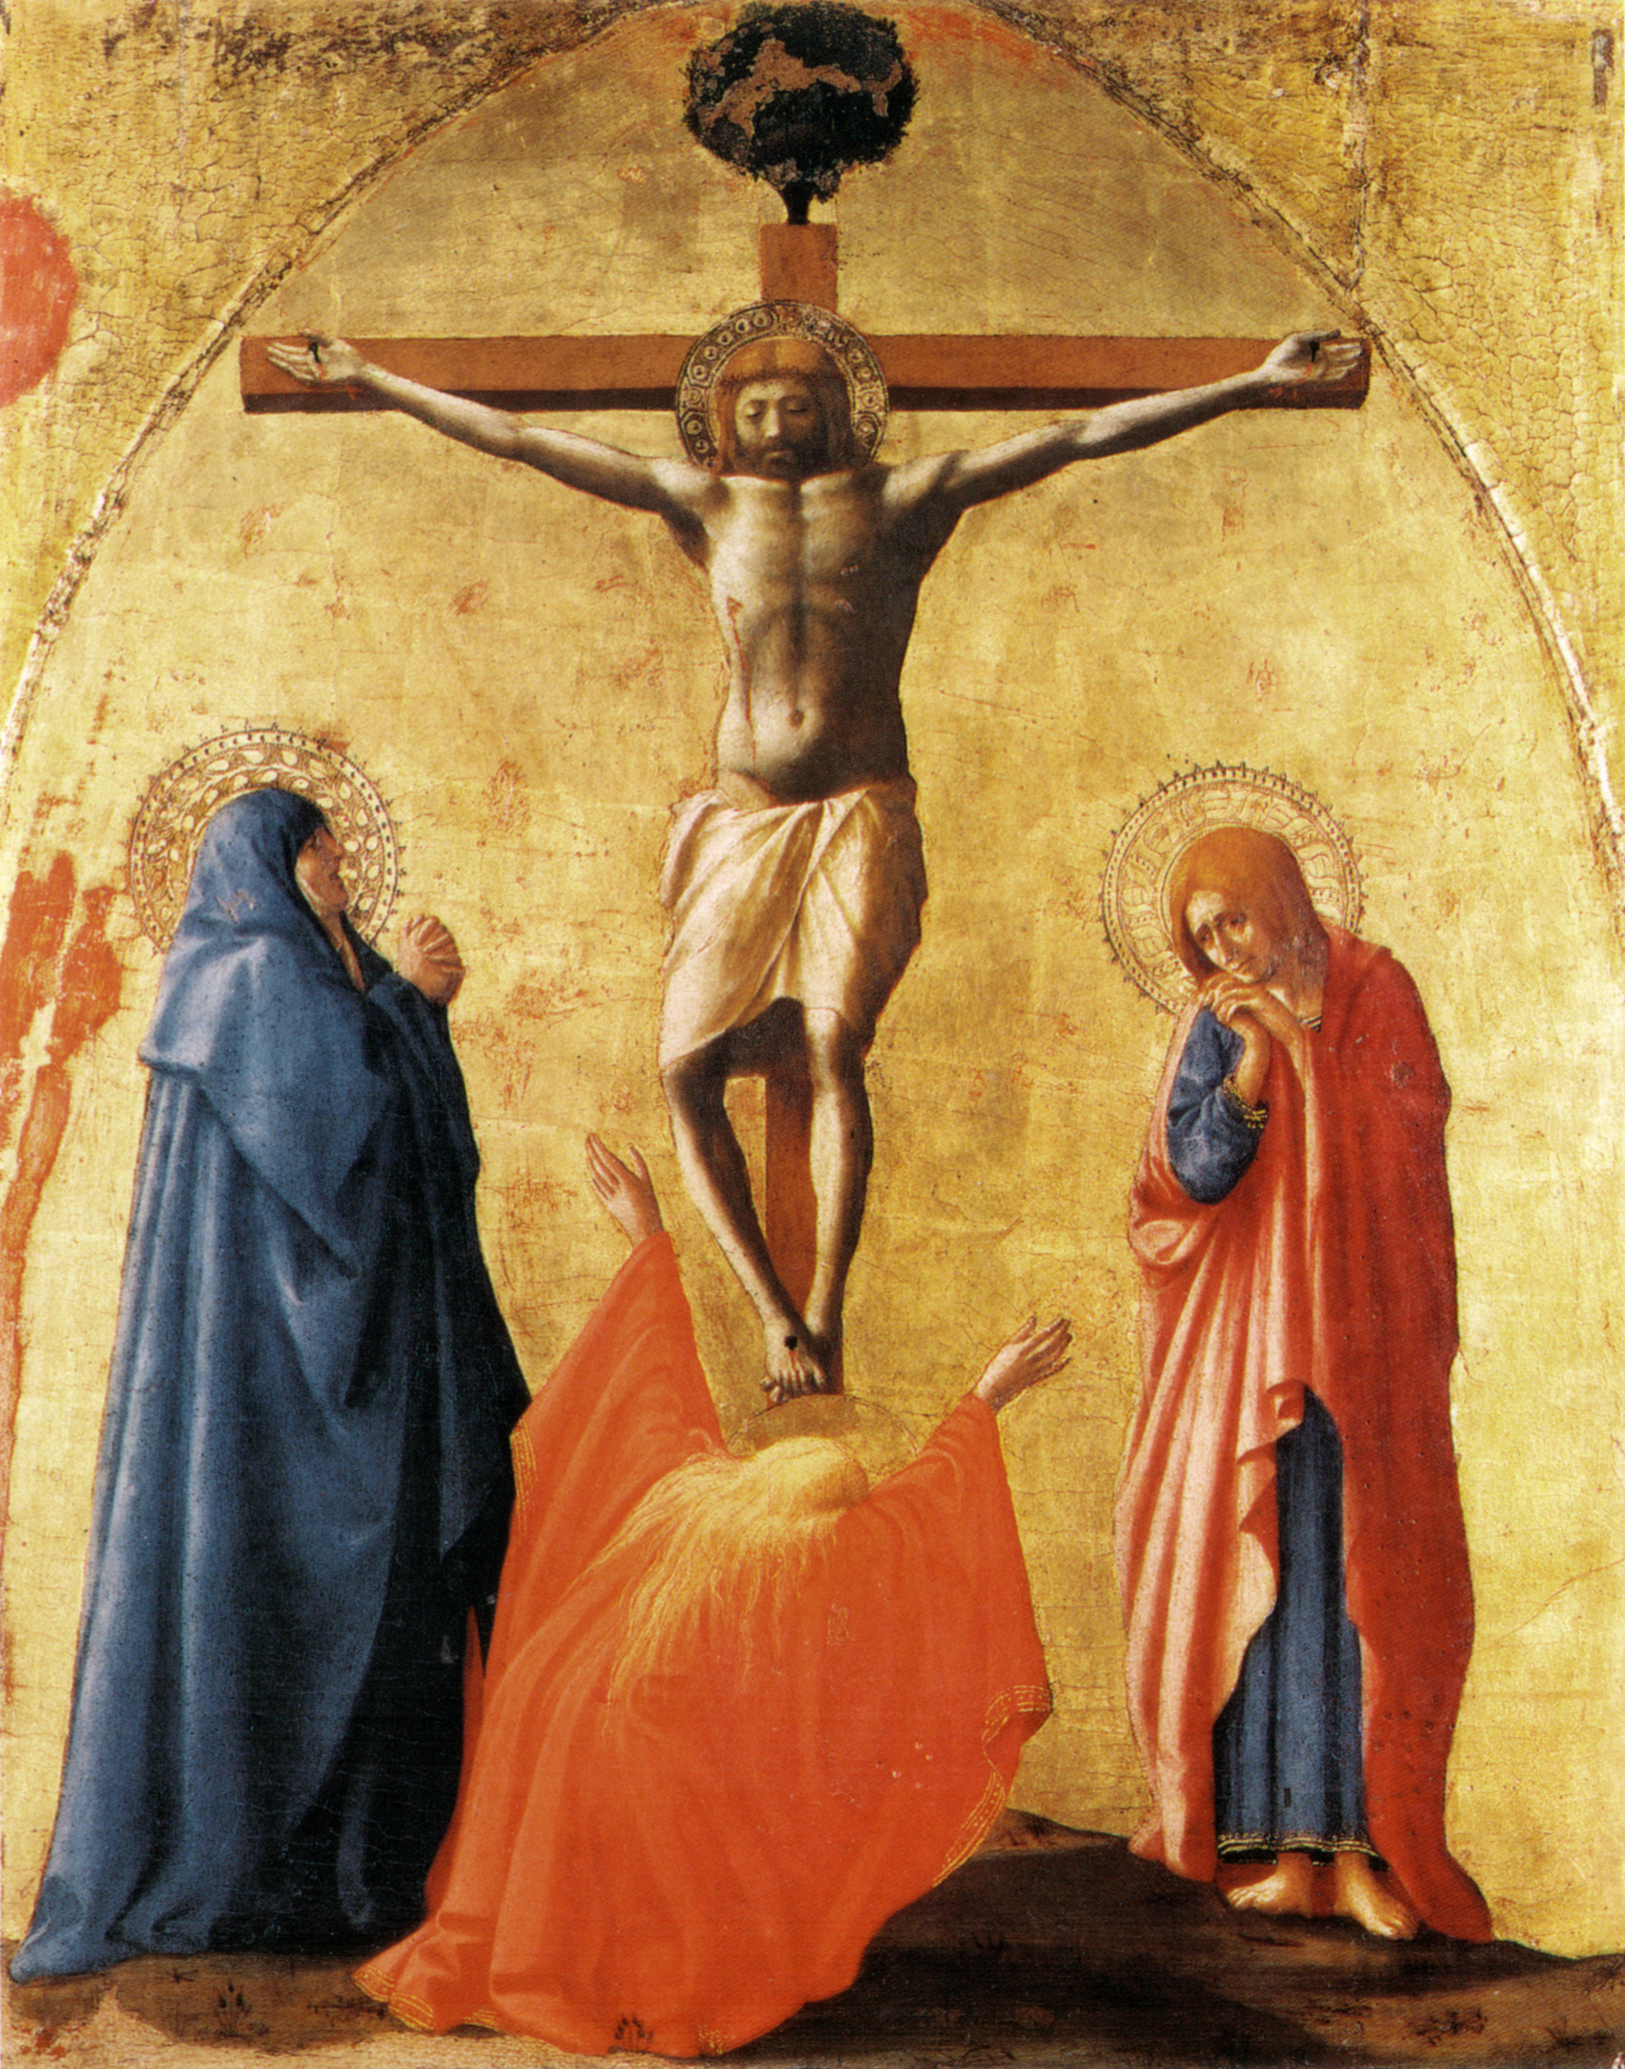 Crucifixion by Masaccio